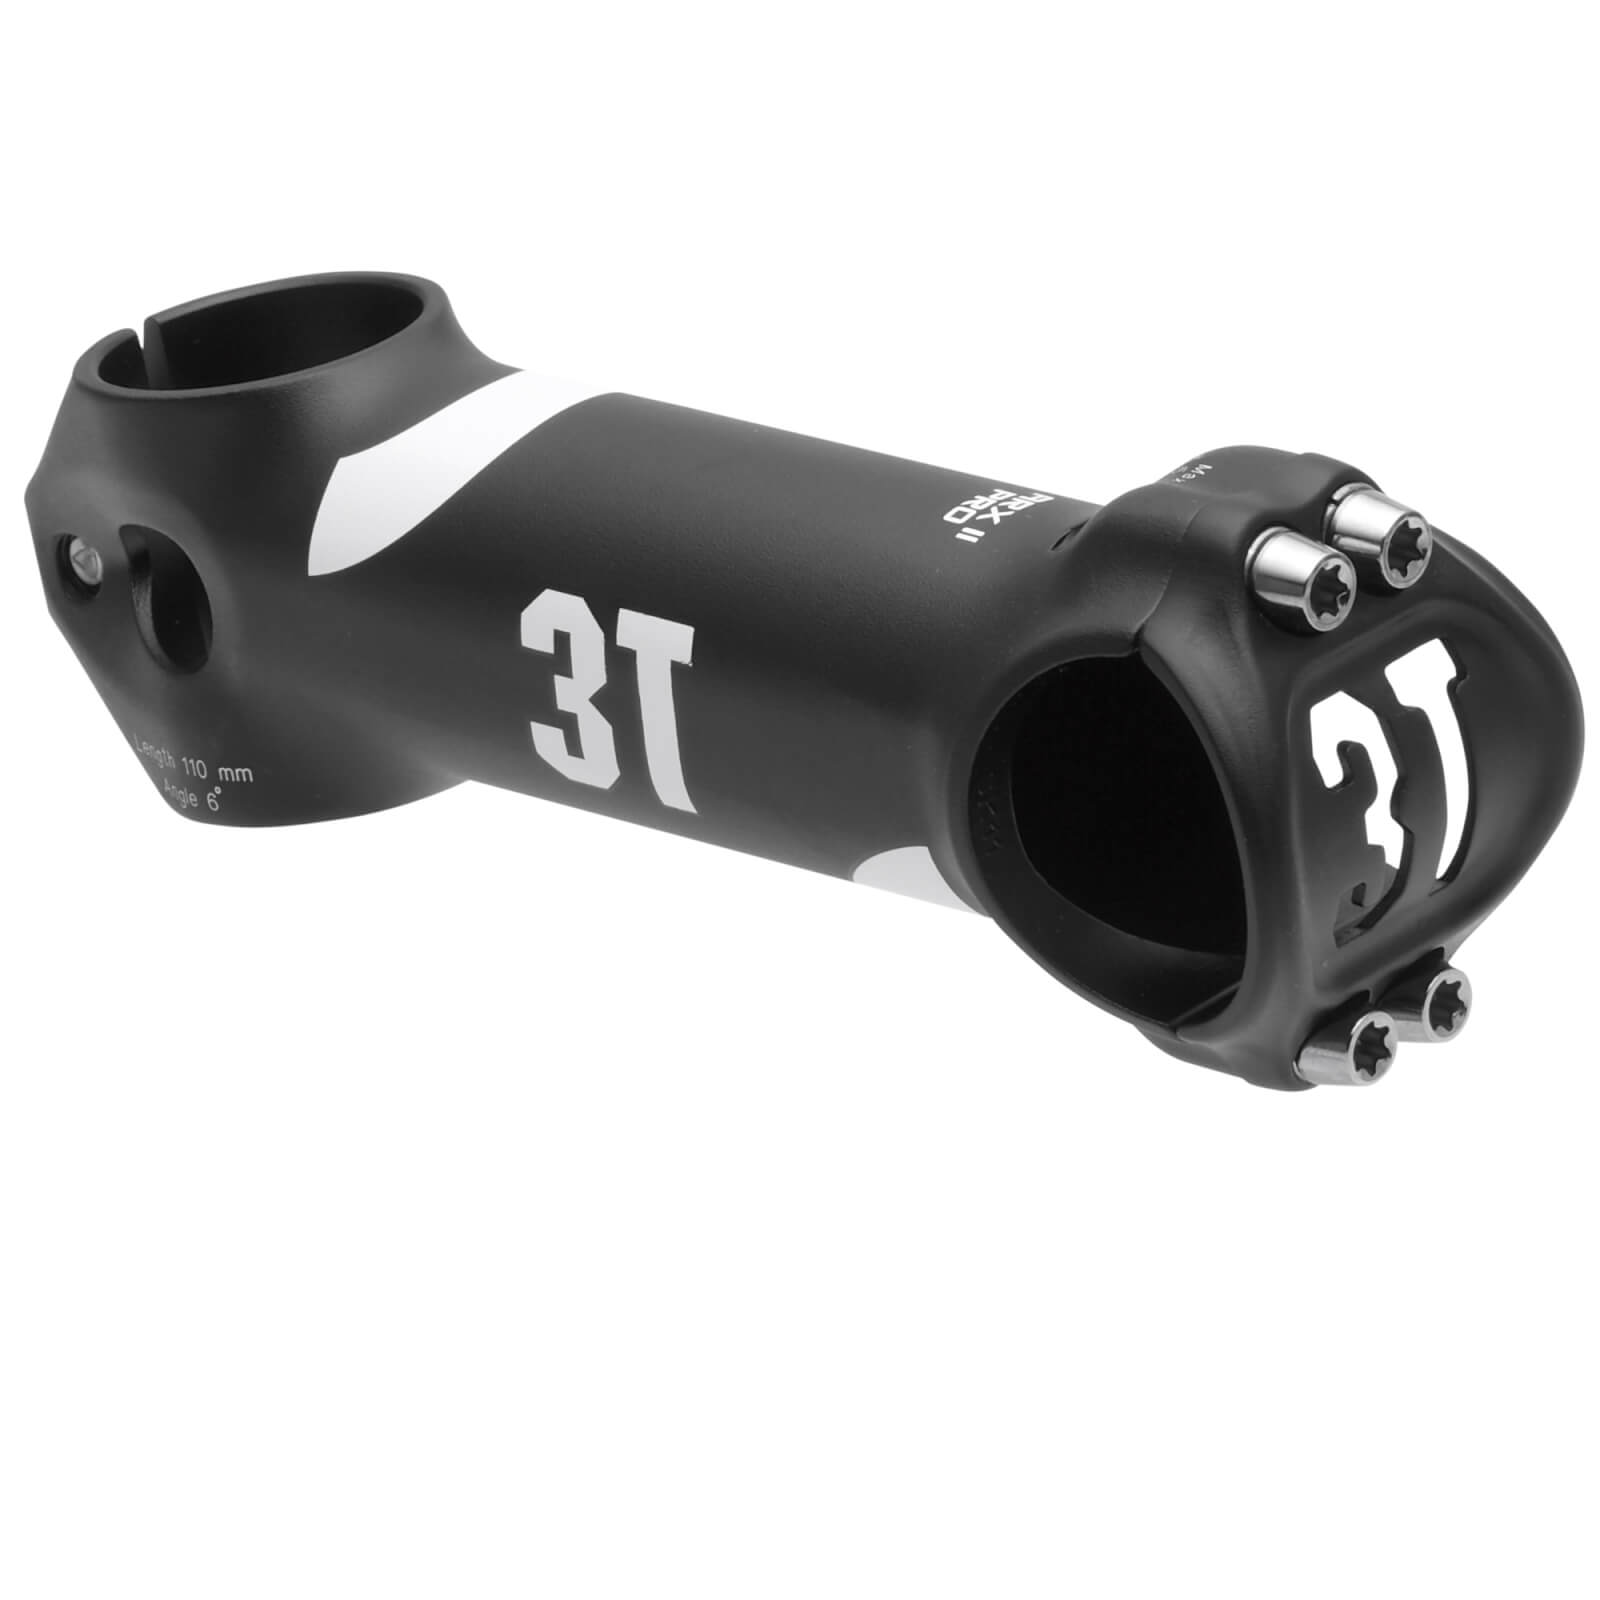 3T Arx II Pro Alloy Stem - Black/White